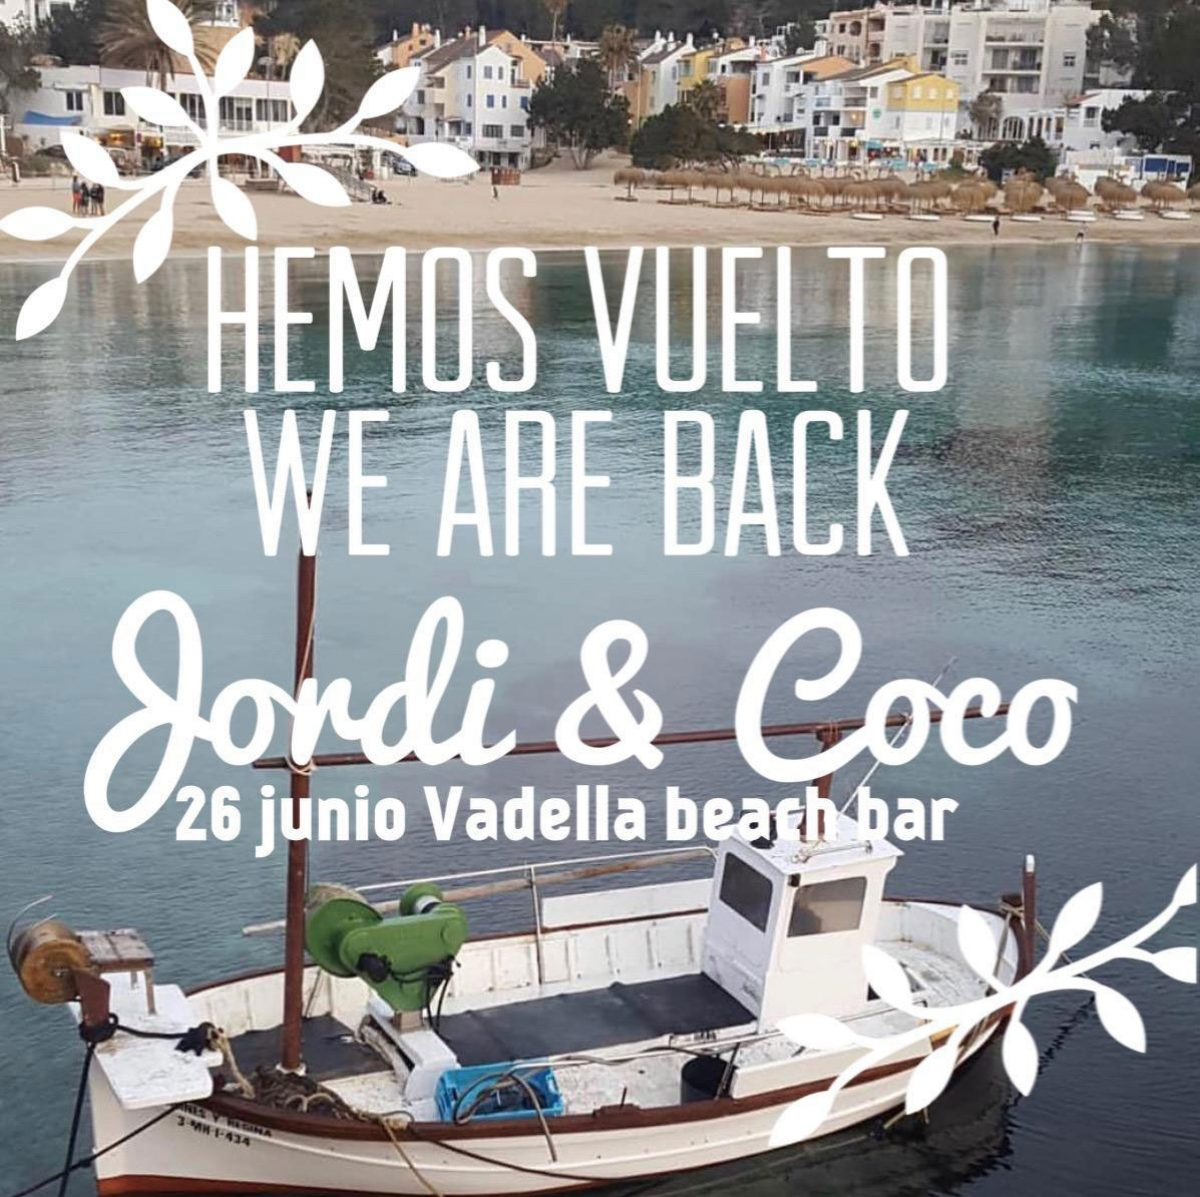 reopening-vadella-beach-bar-ibiza-2020-welcometoibiza